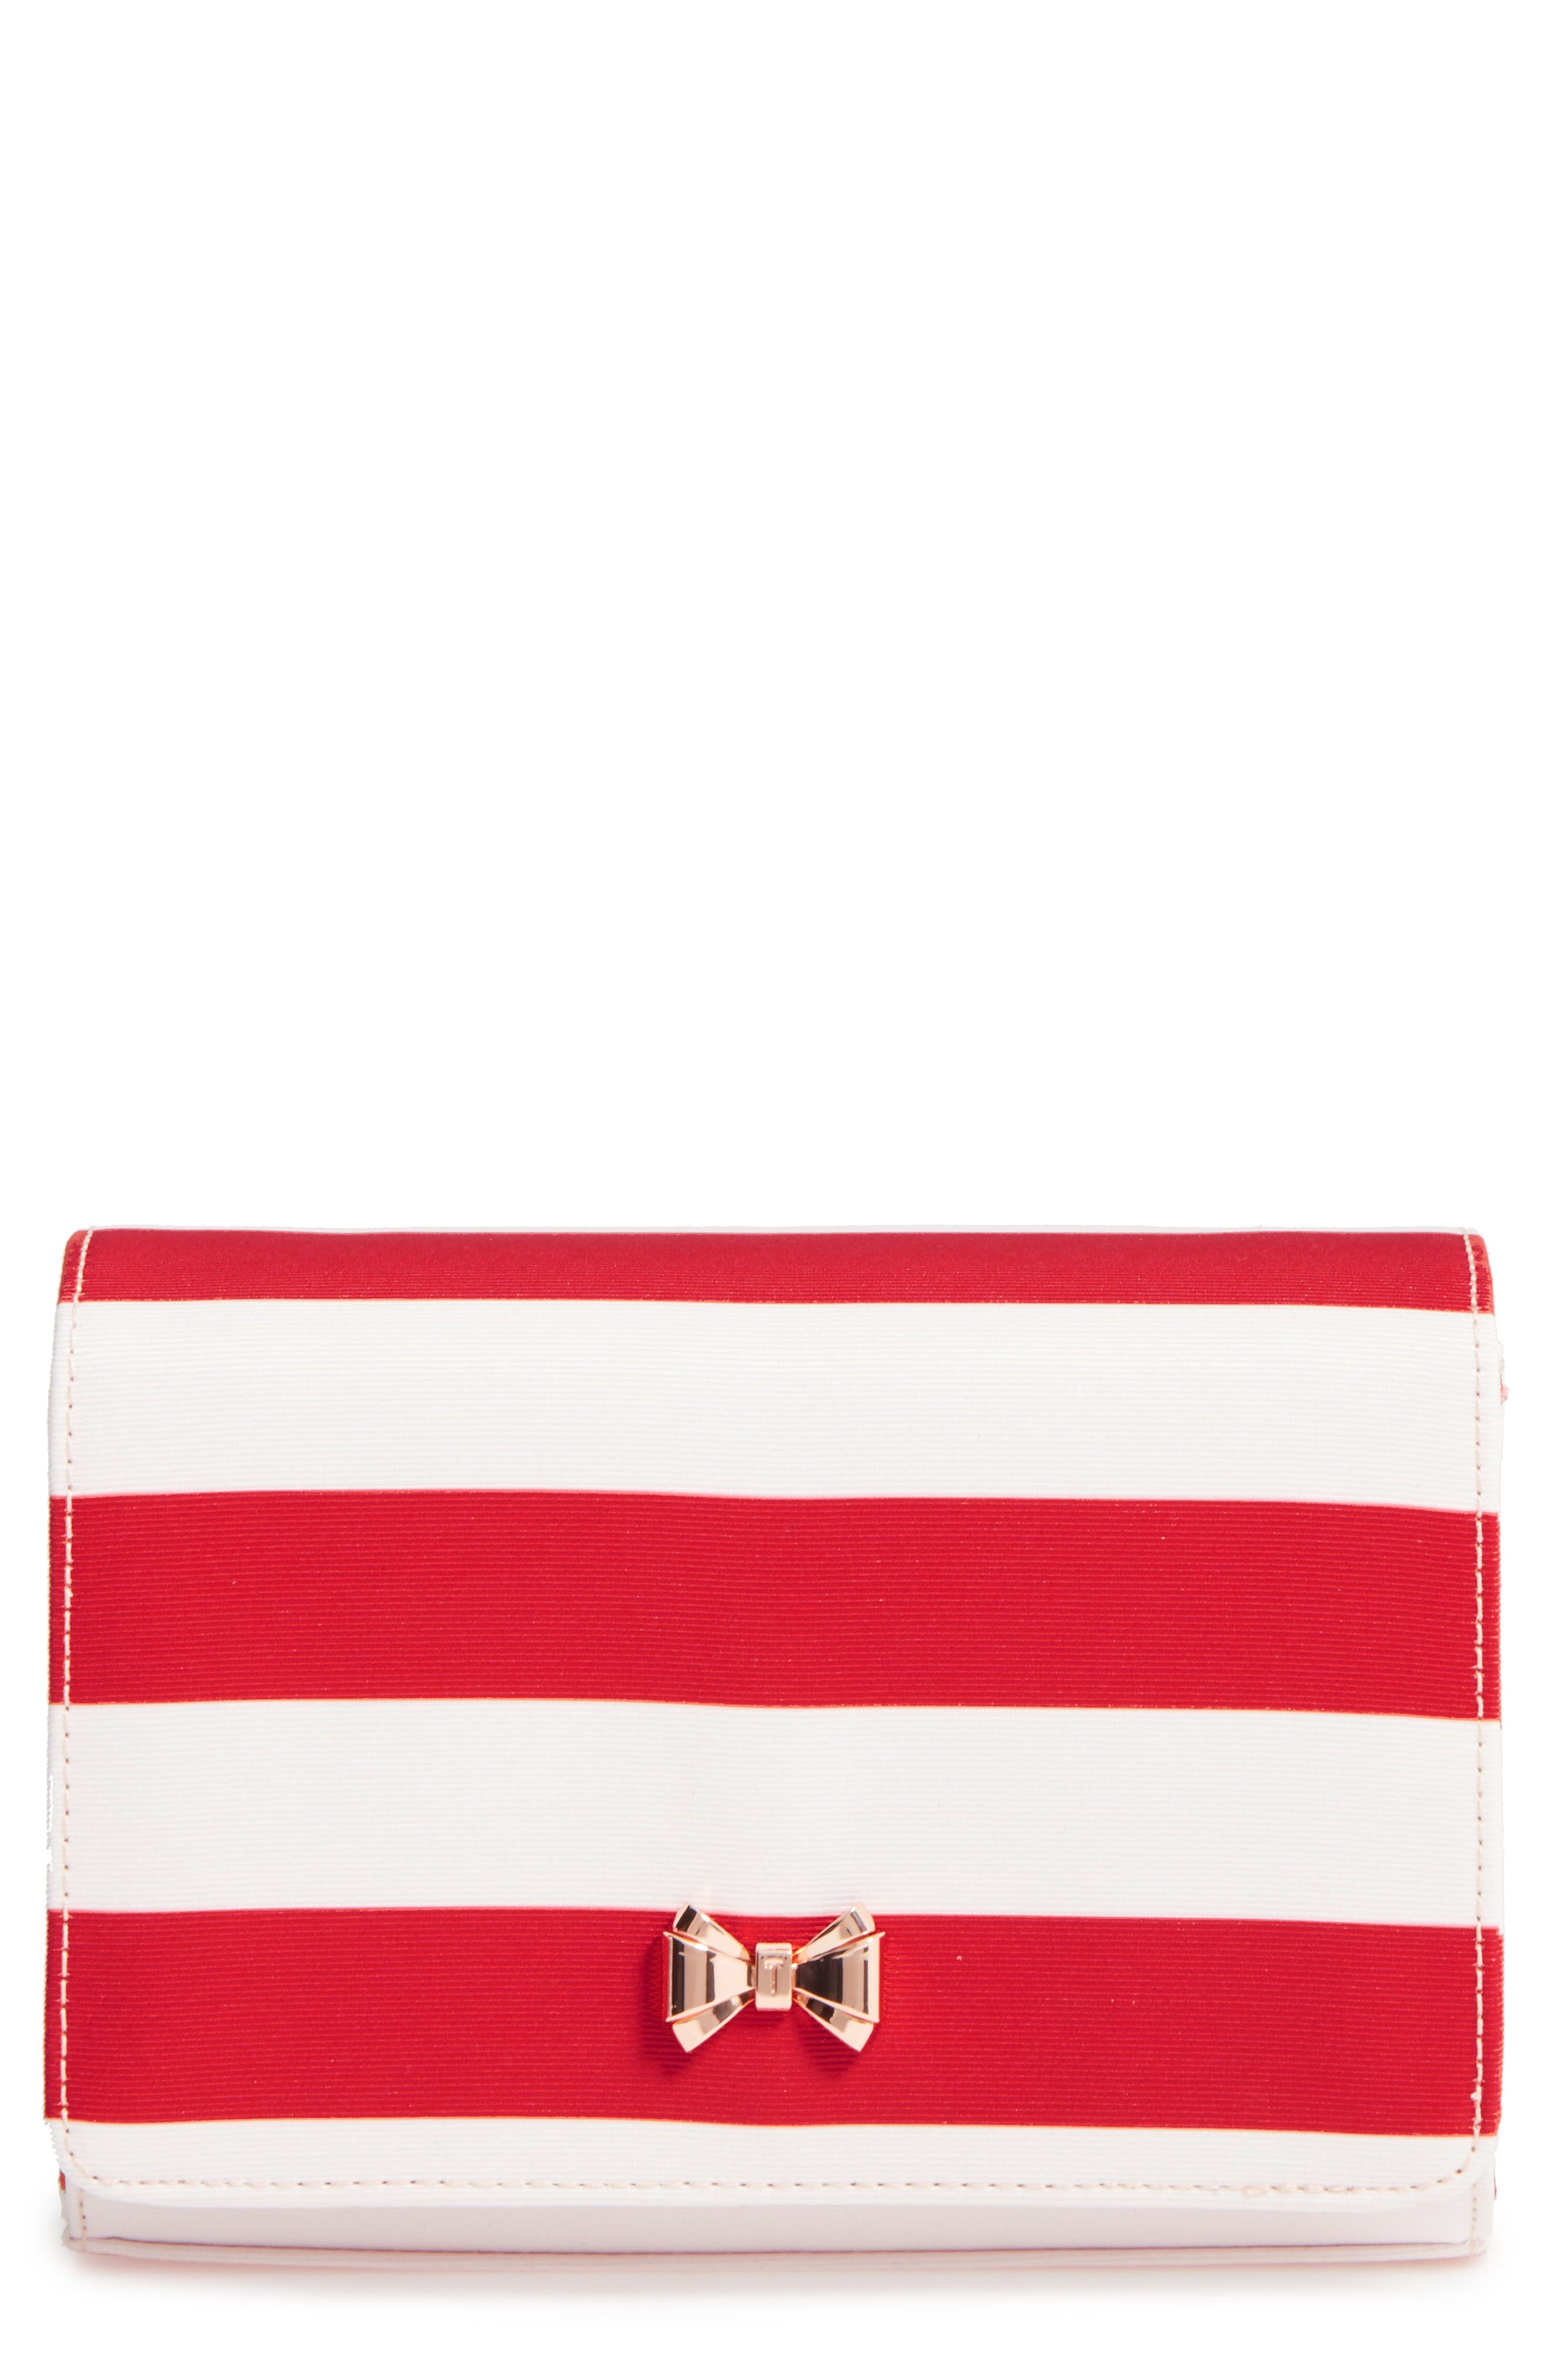 Alternate Image 1 Selected - Ted Baker London Pier Stripe Clutch